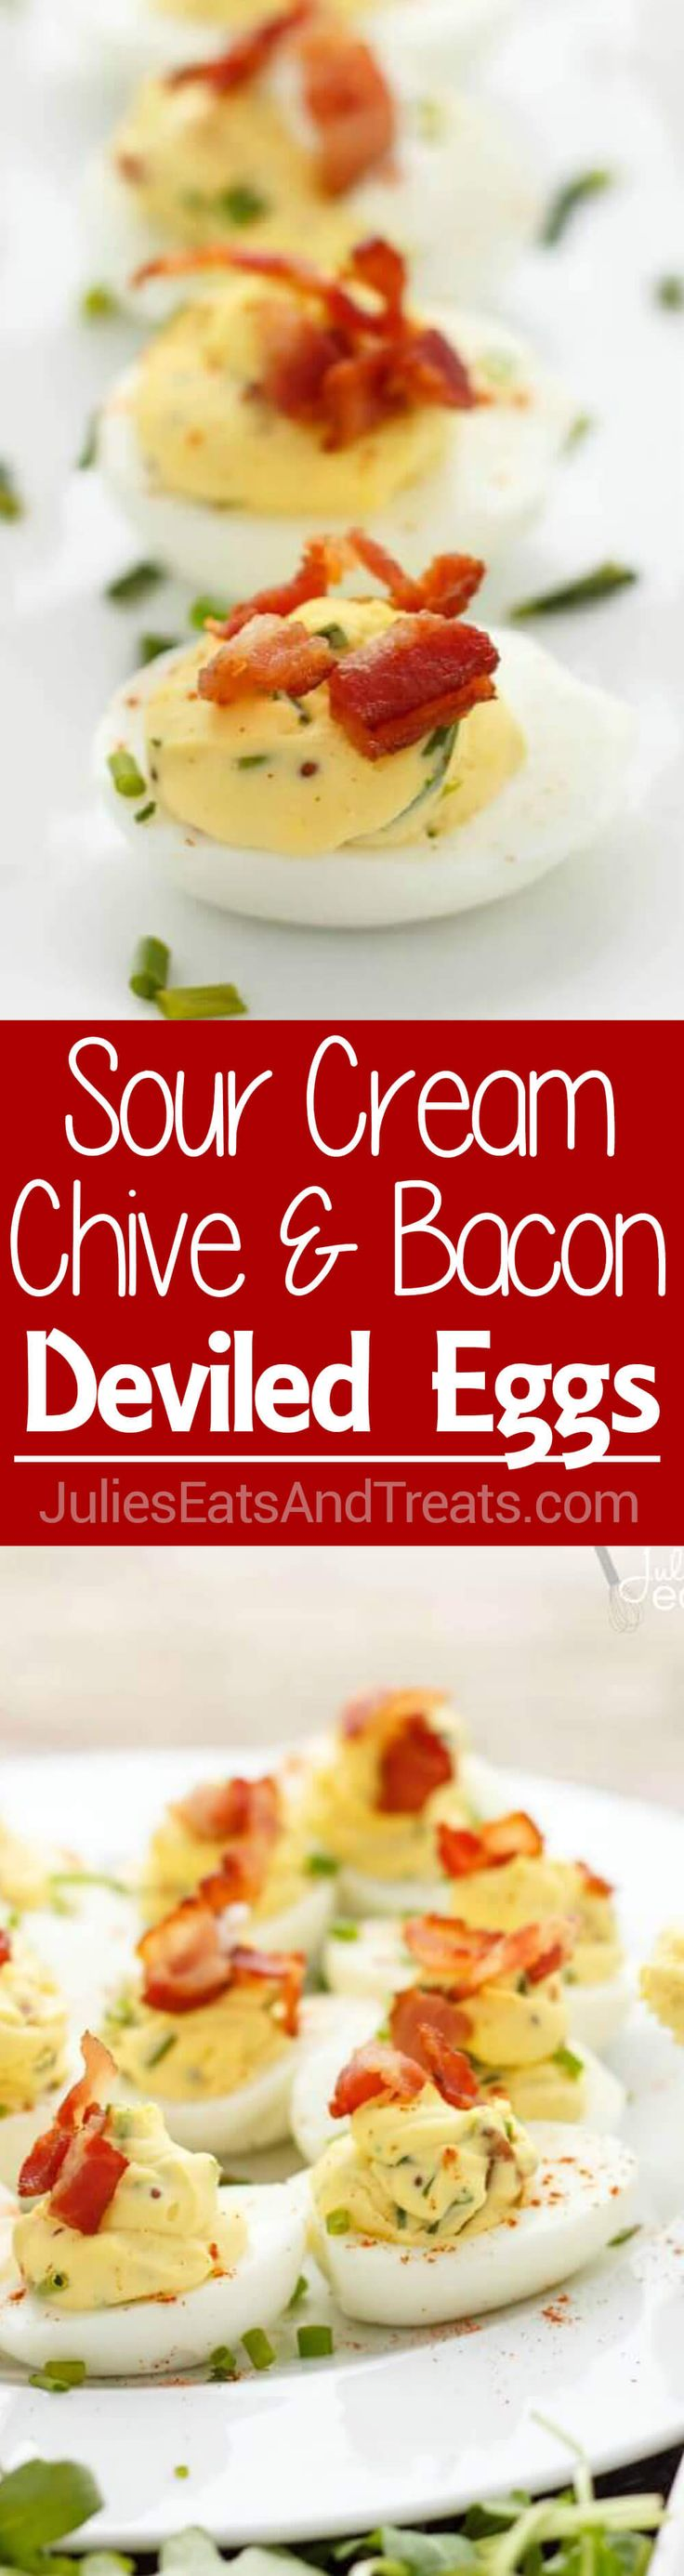 Sour Cream, Chive, and Bacon Deviled Eggs Recipe ~ Creamy Deviled Eggs Loaded with Sour Cream, Chive and Bacon! Perfect Side Dish for the Holiday! ~ http://www.julieseatsandtreats.com